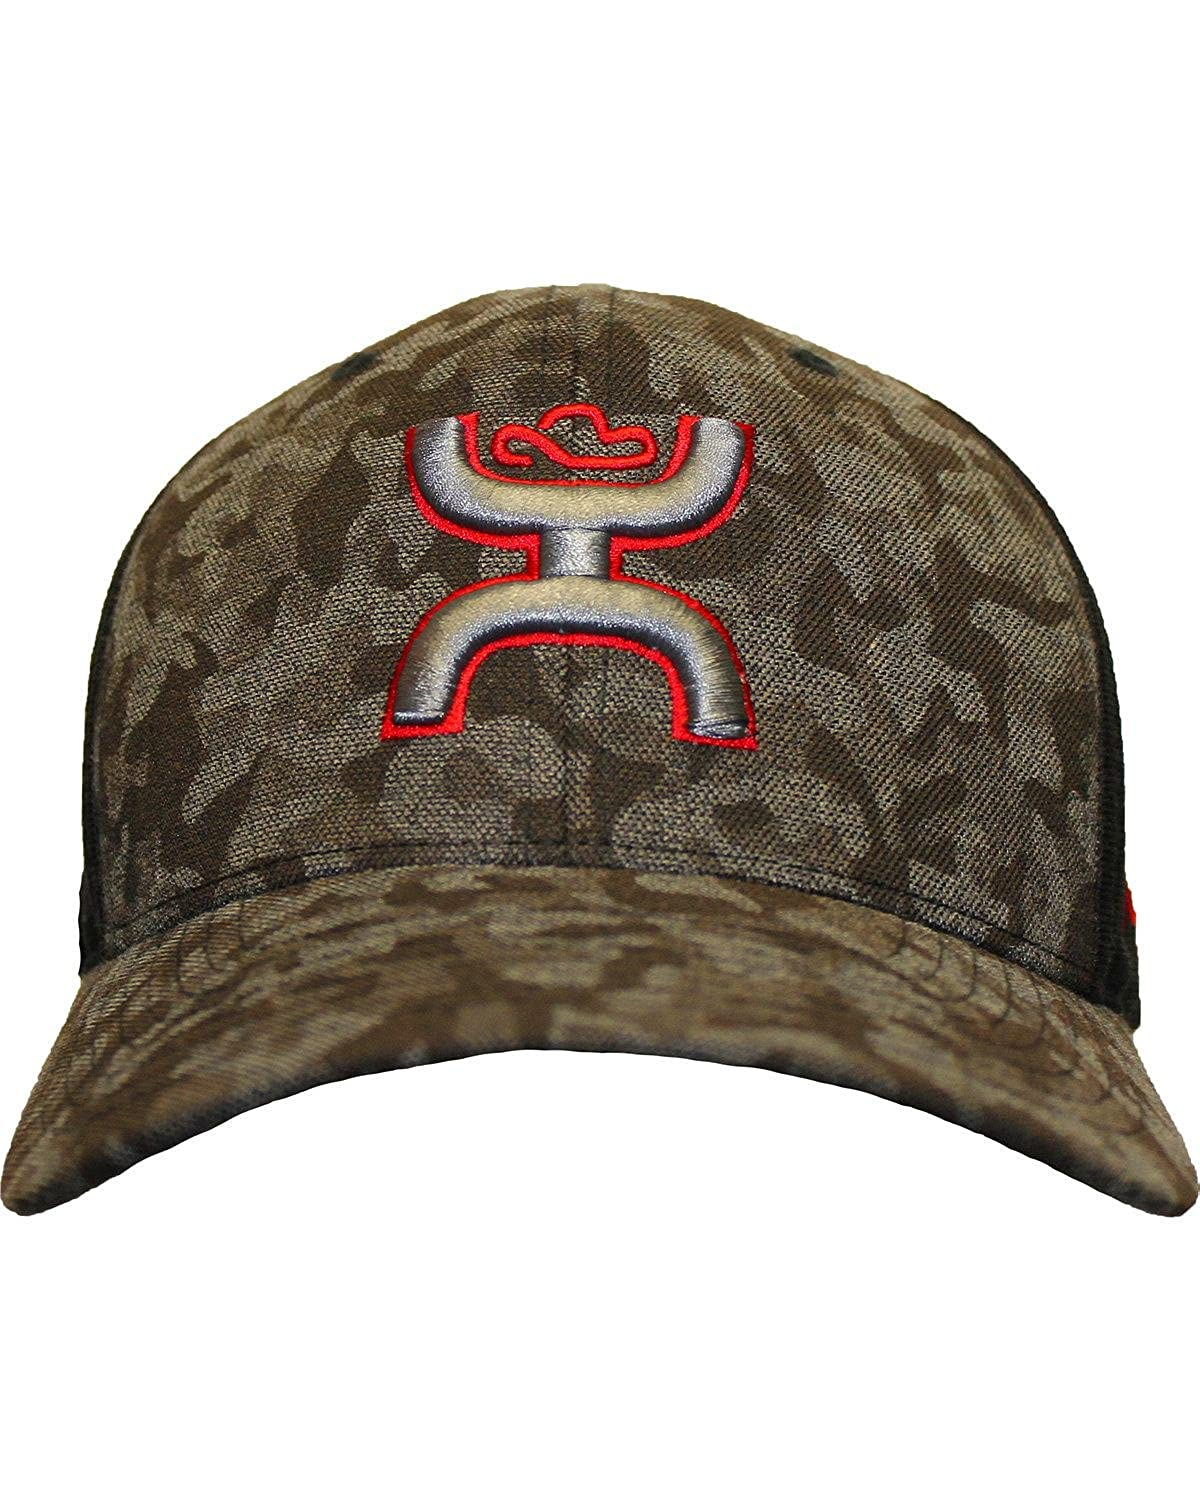 dc71510ac1401 HOOey Men s Camo Chris Kyle Memorial Flexfit Hat Camouflage S M ...